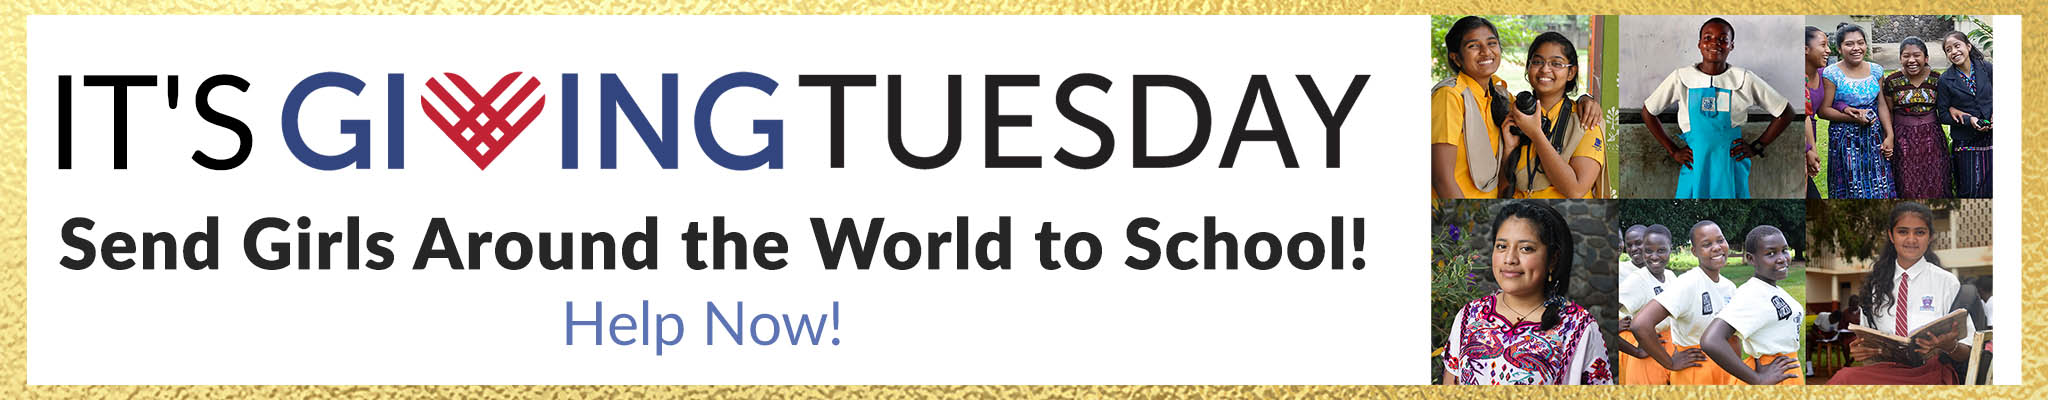 It's Giving Tuesday! Send Girls Around the World to School! Help Now